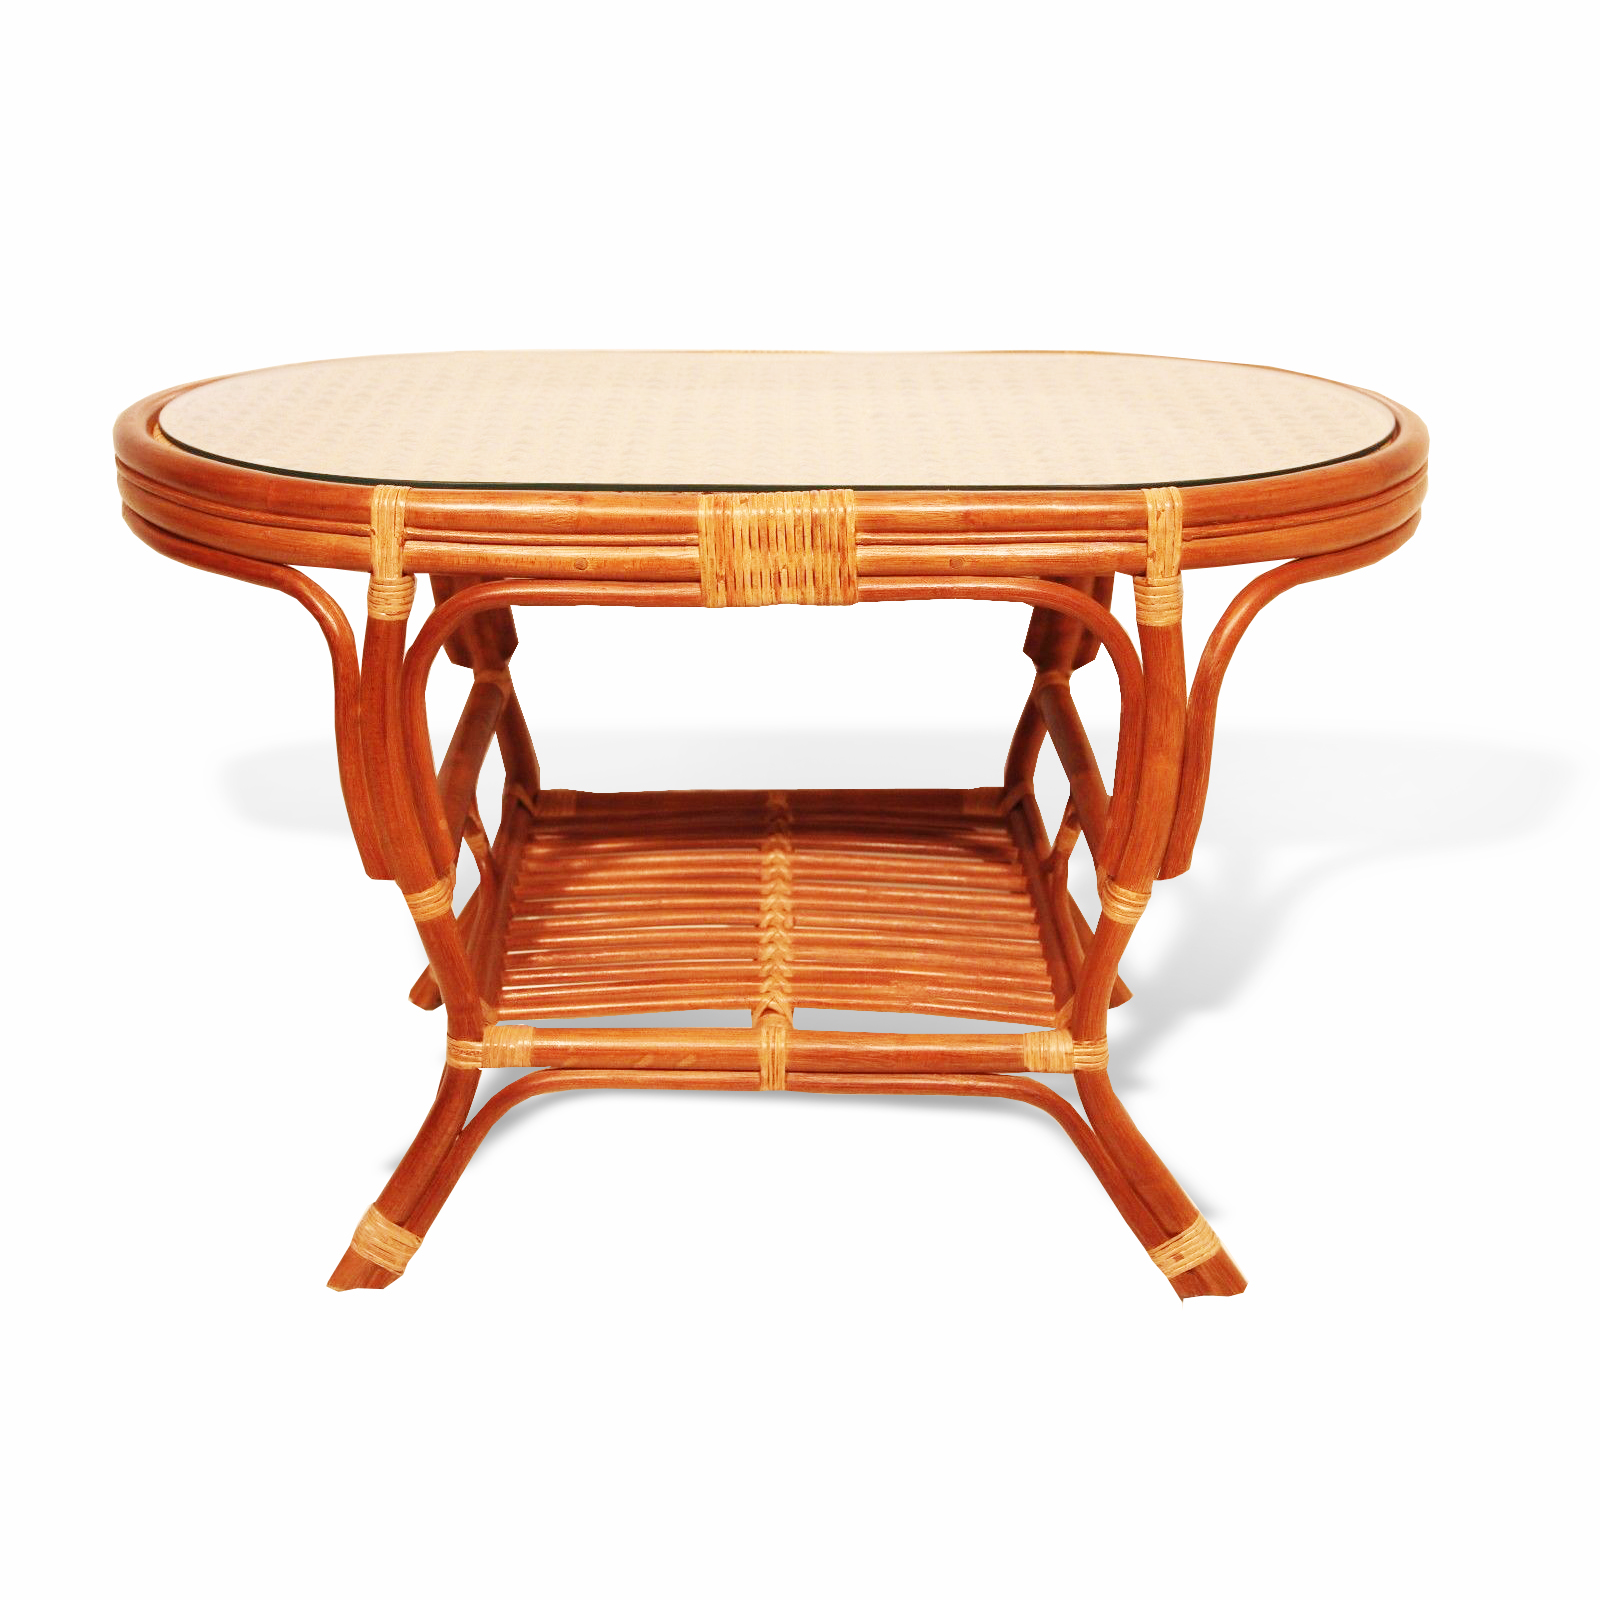 Buy Pelangi Oval Coffee Table In USA, Best Price, Free